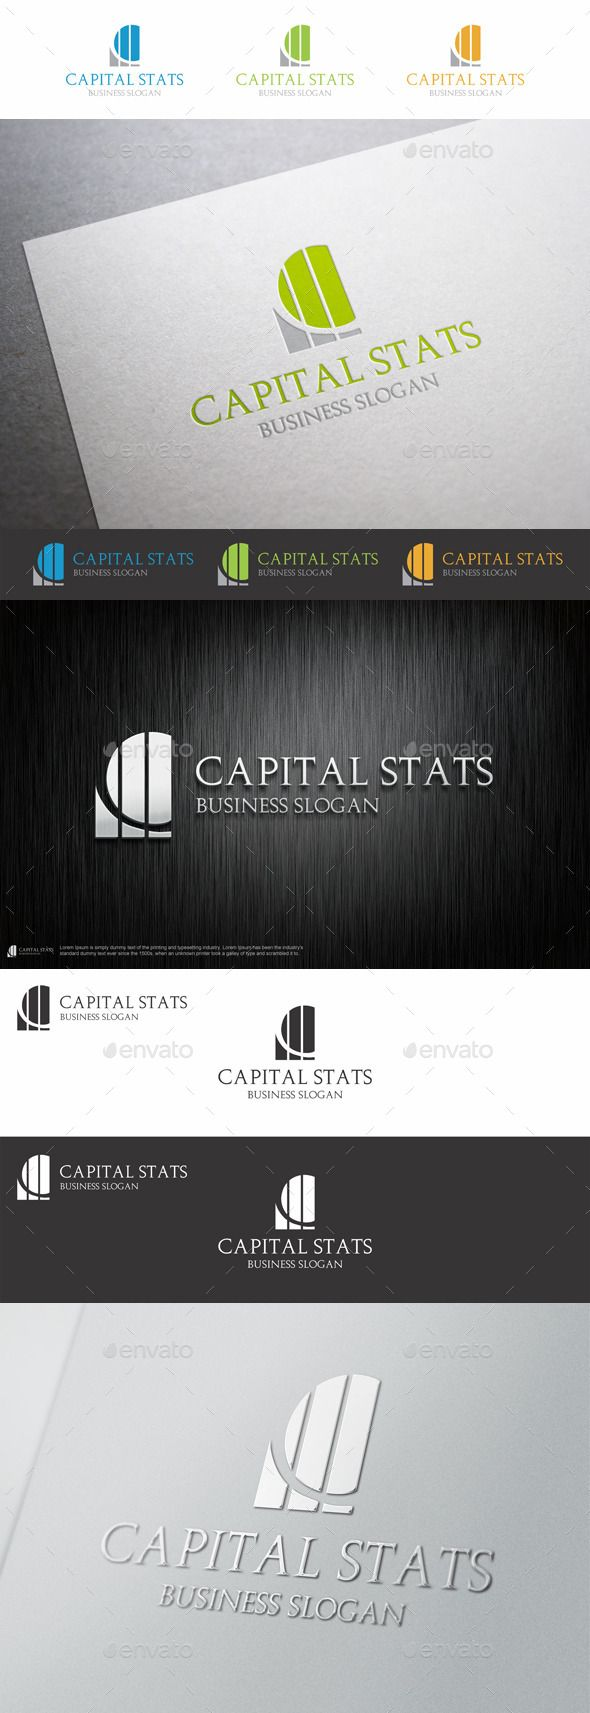 Logos with cc joy studio design gallery best design - Capital Stats C Letter Logo Chart Investment Financial Logo Is A